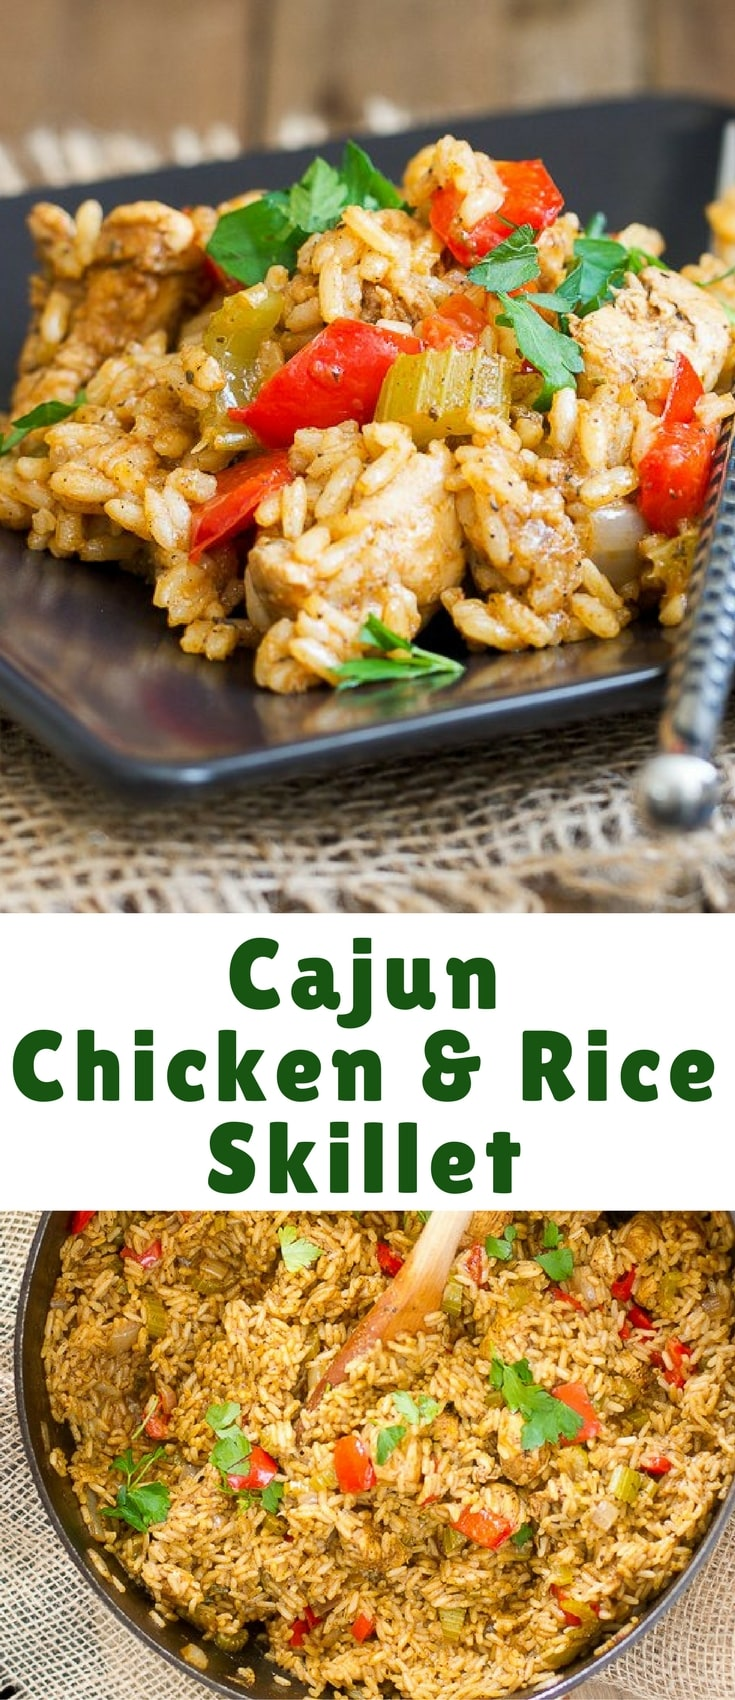 This Cajun Chicken and Rice Skillet is an easy one pot meal that's hot, hot, hot! Of course, if you don't like the heat, you can turn it down with less cayenne pepper.